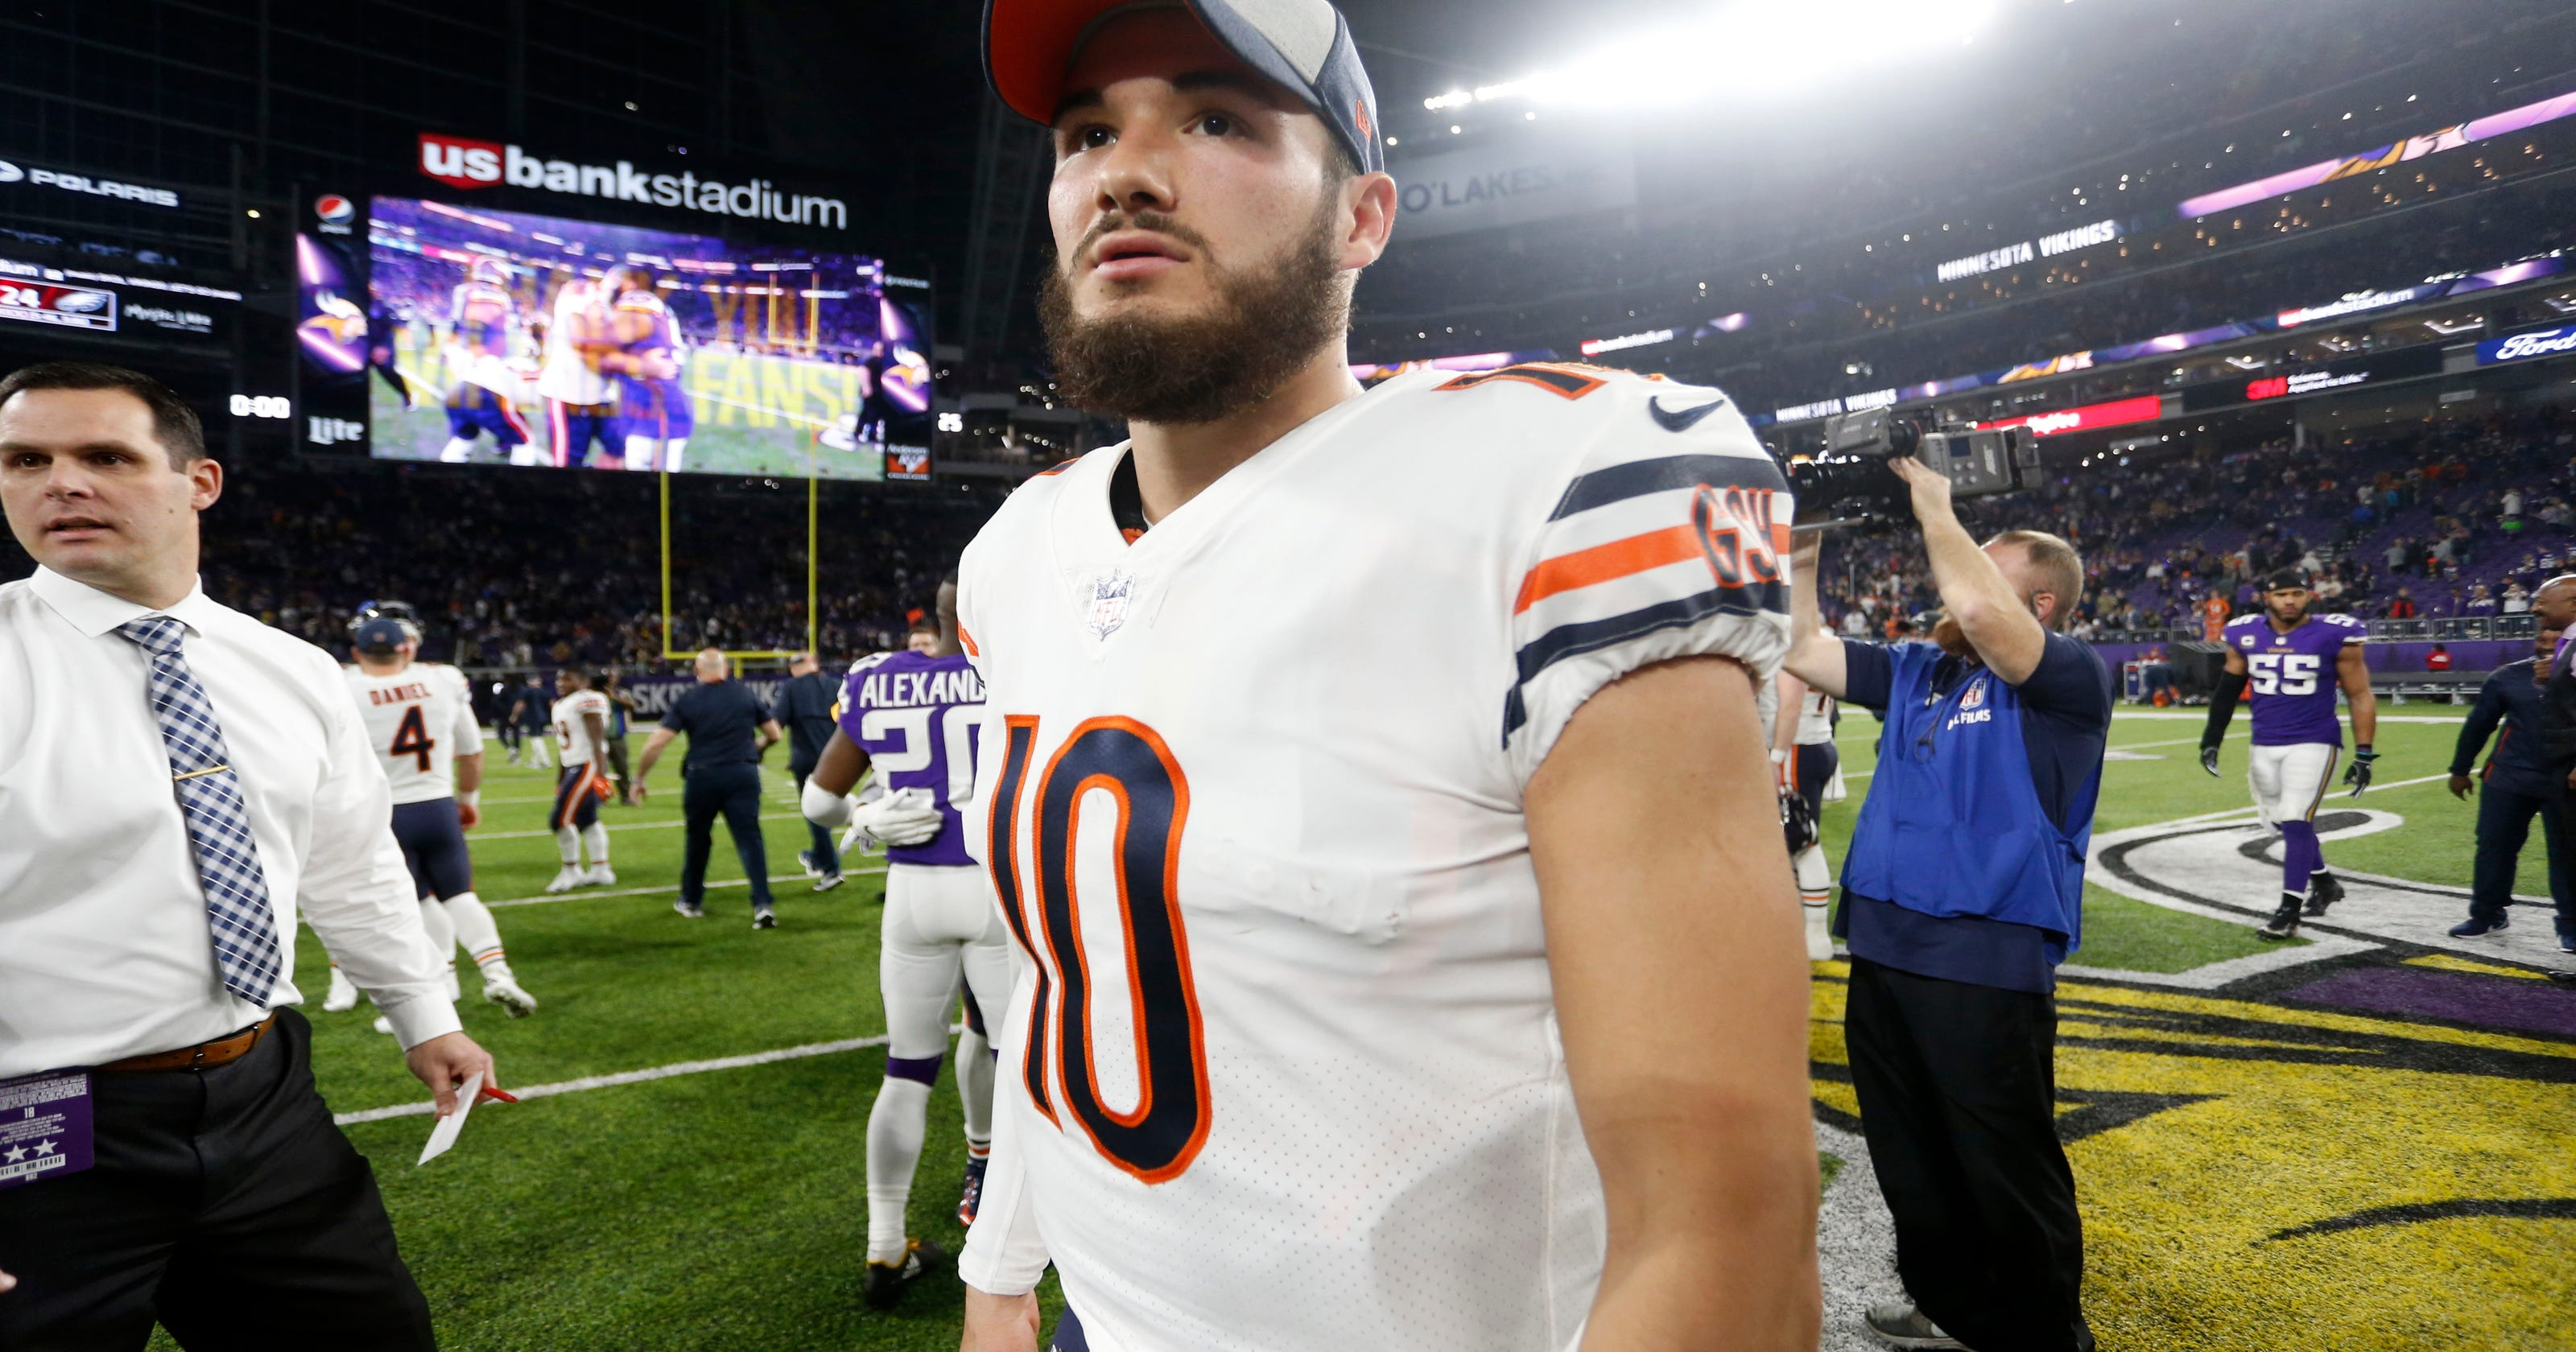 NFC North champion Bears look to keep rolling in playoffs f4346c259